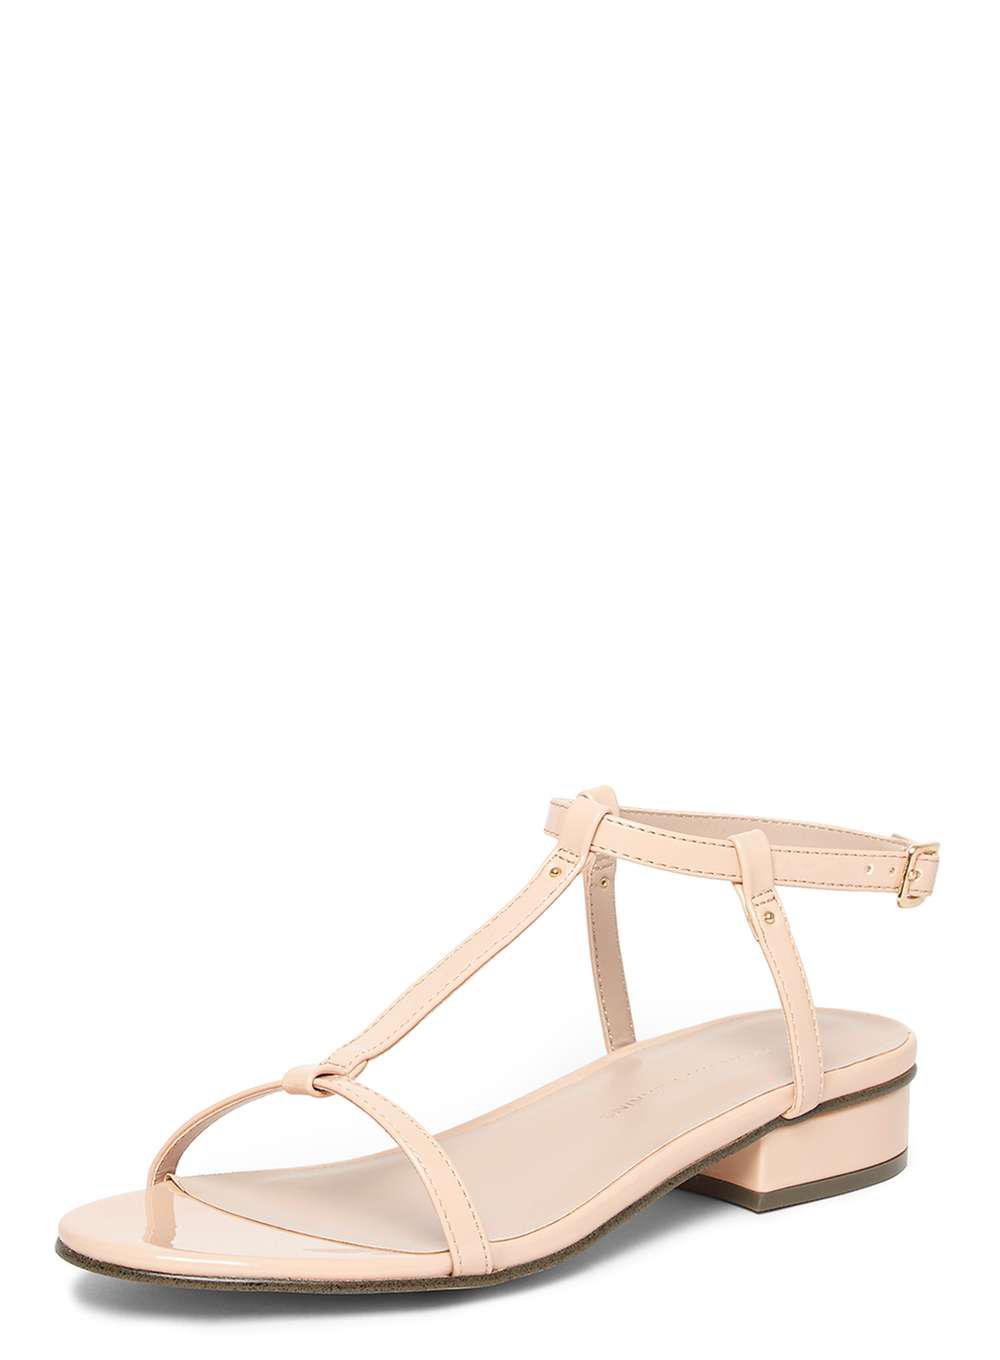 Dorothy PerkinsFRANKEE - T-bar sandals - nude